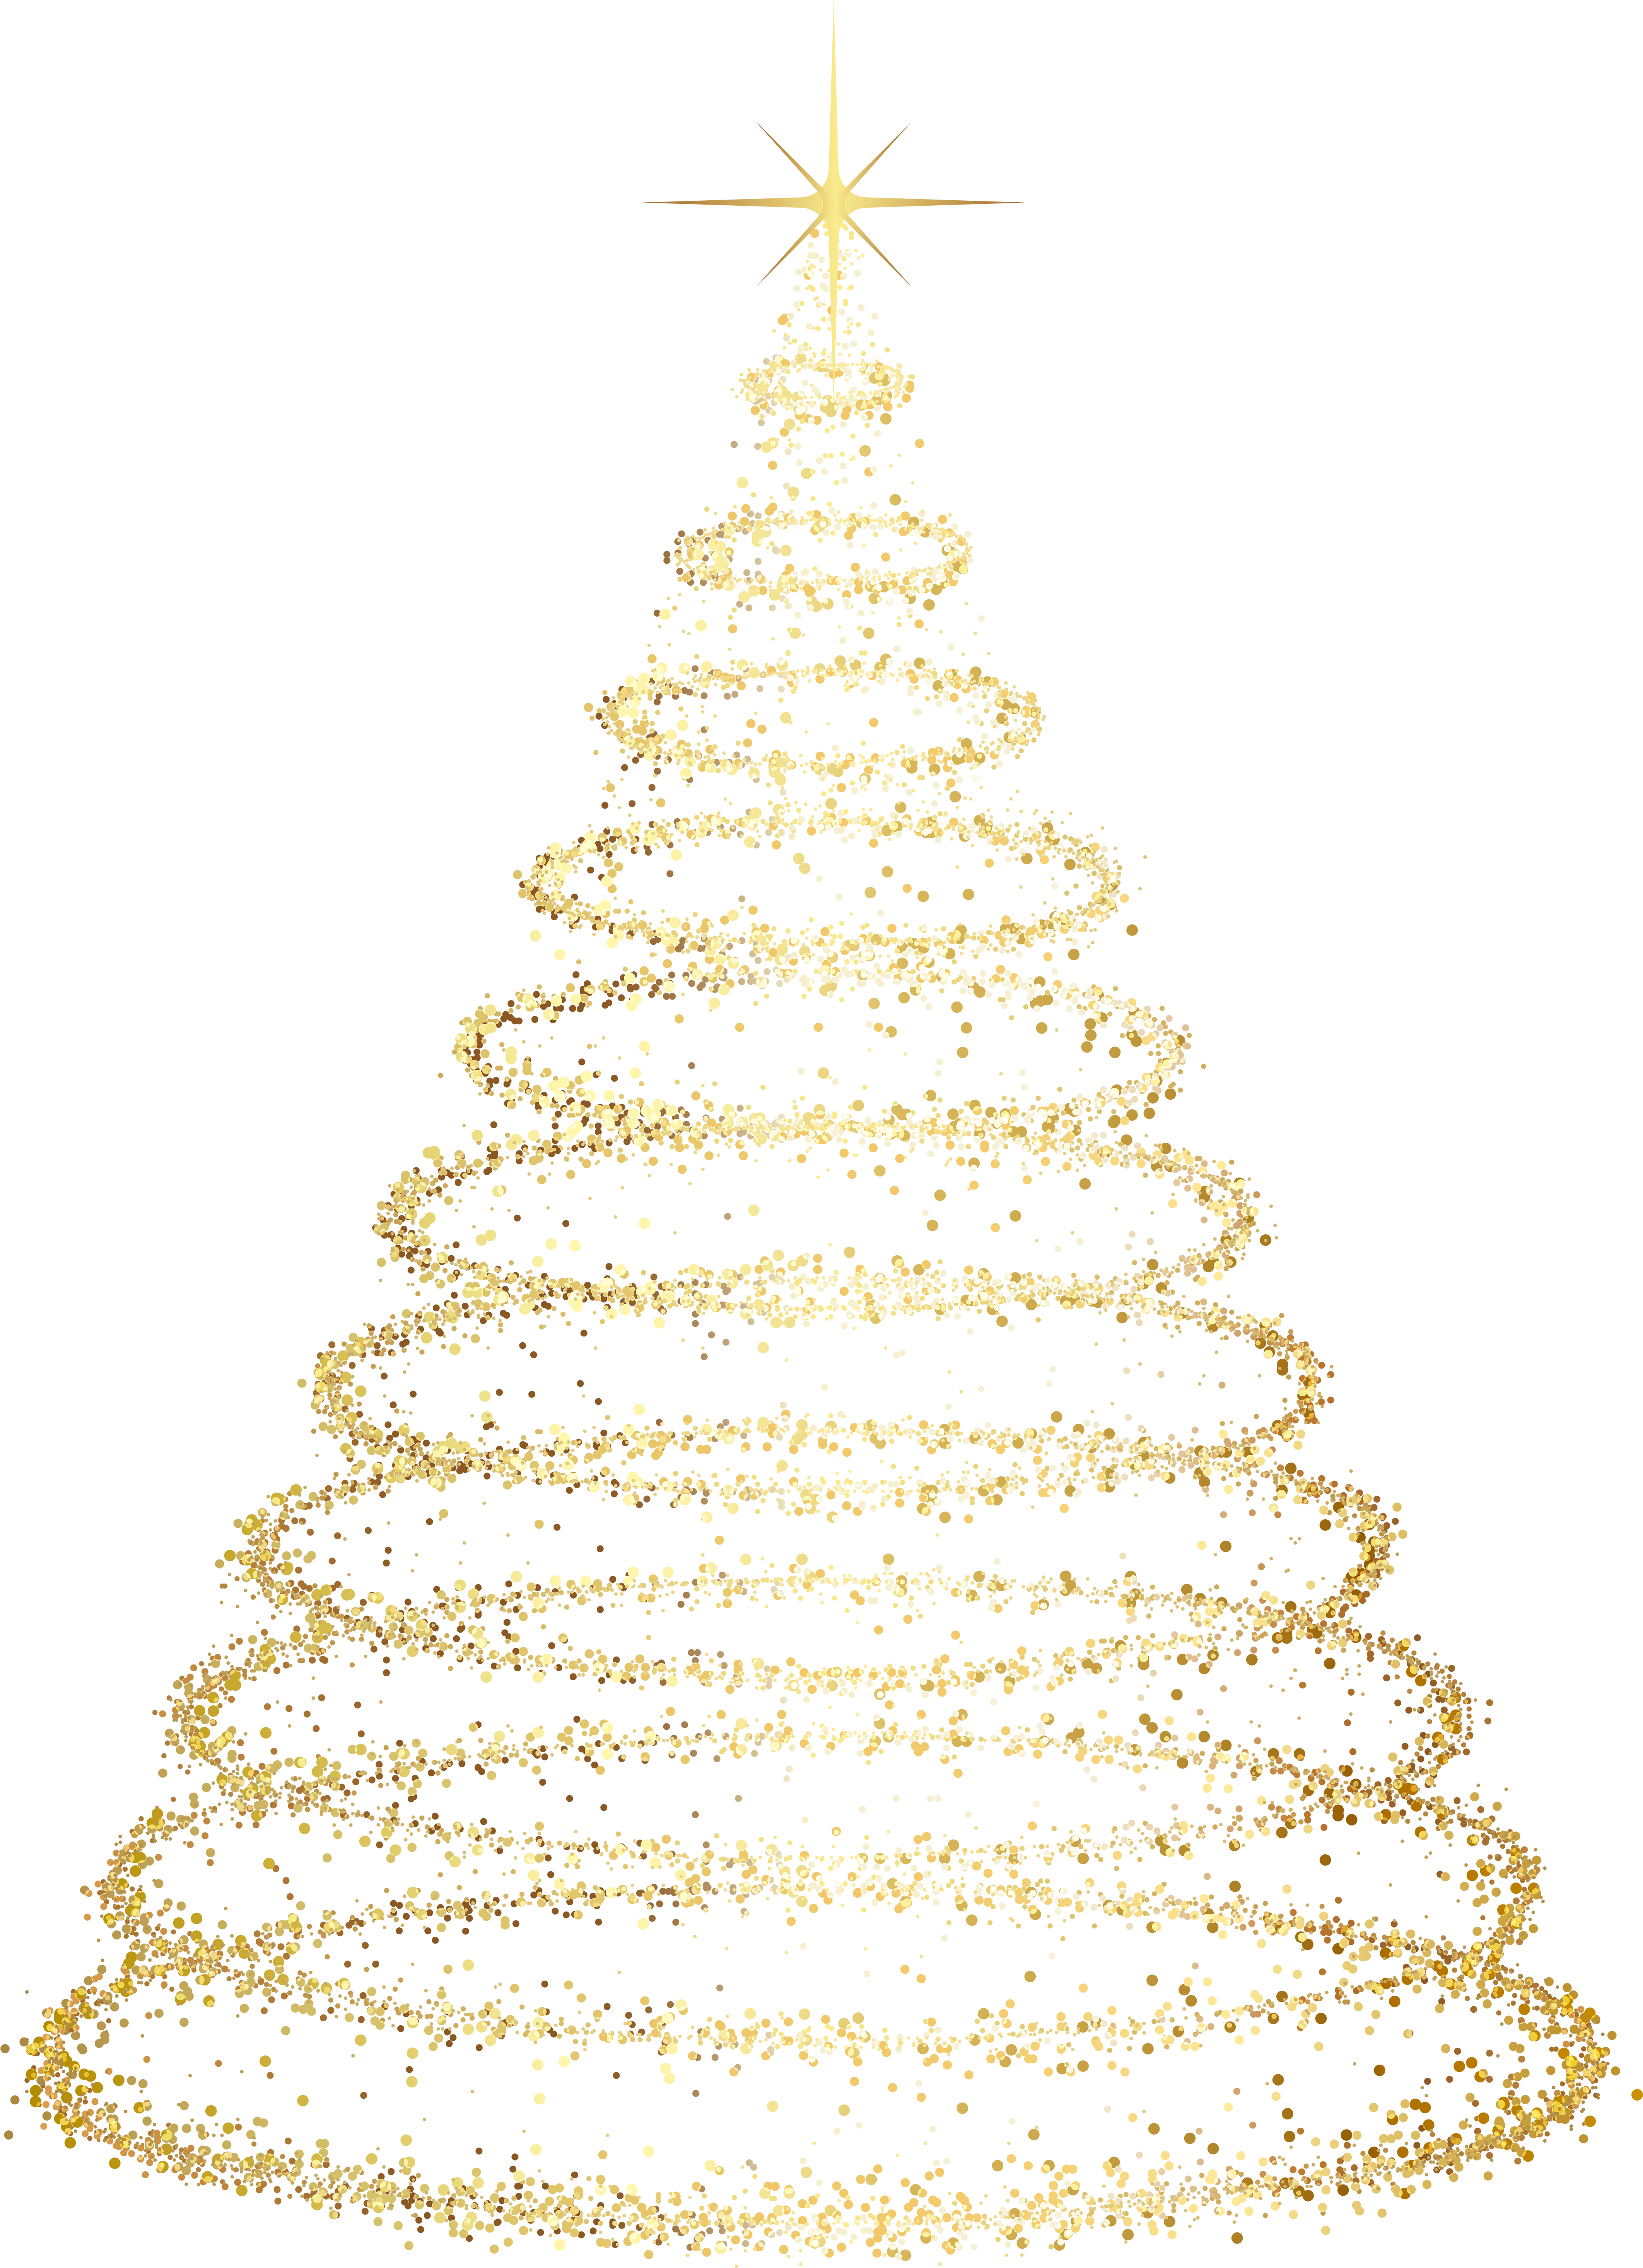 Gold Deco Christmas Tree Transparent Clip Art Image - Christmas Tree Png Transparent Background (4345x6000), Png Download